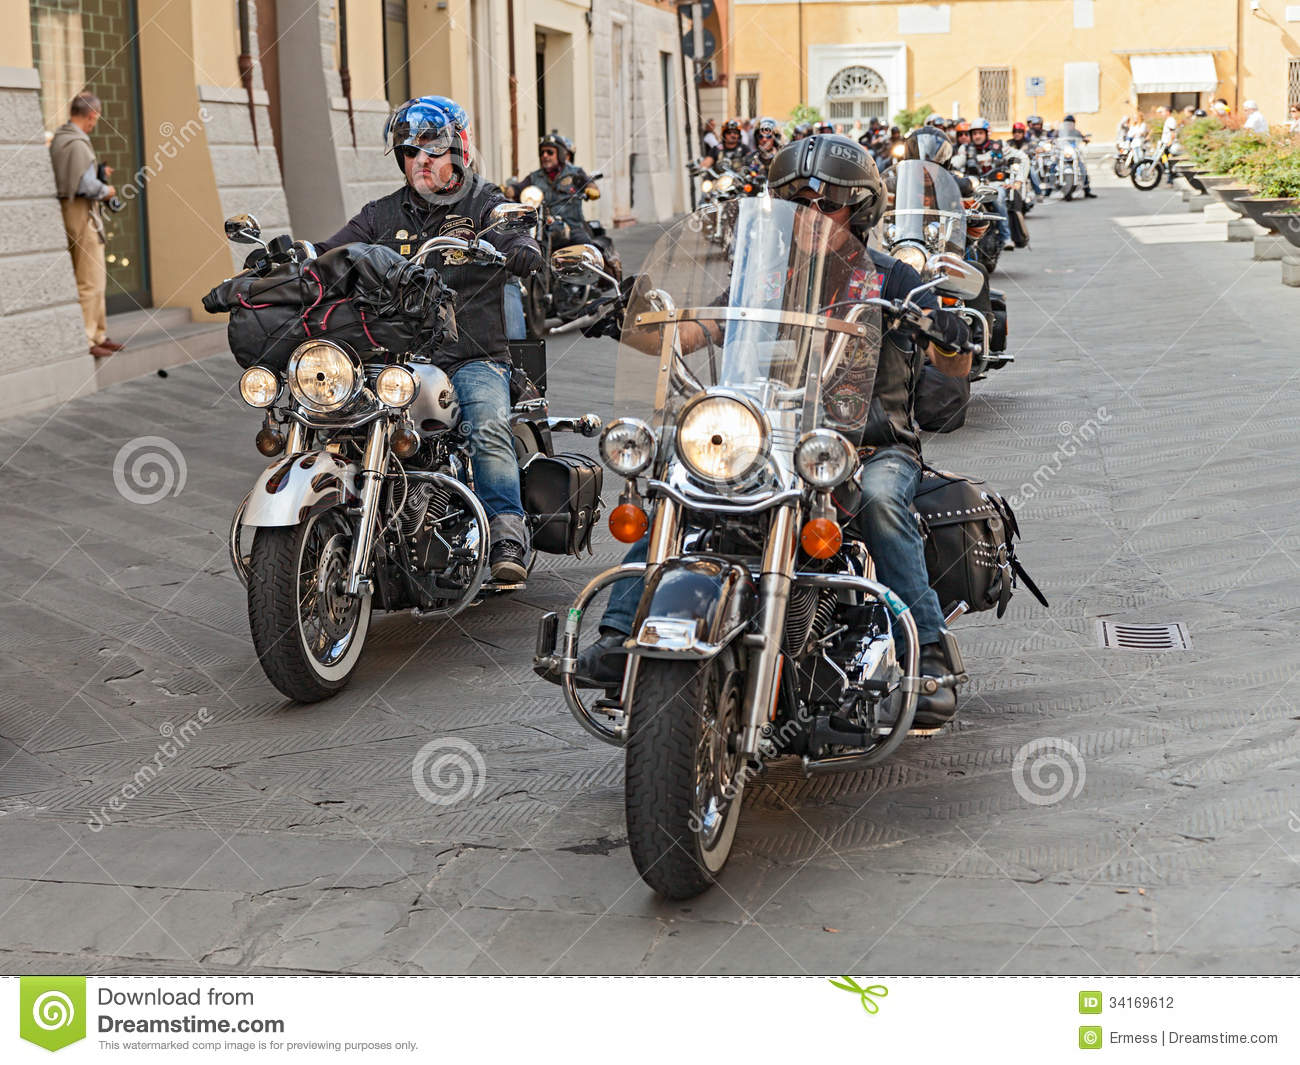 A group of bikers riding harley davidson editorial photography a group of bikers riding harley davidson rider fashioned kristyandbryce Image collections